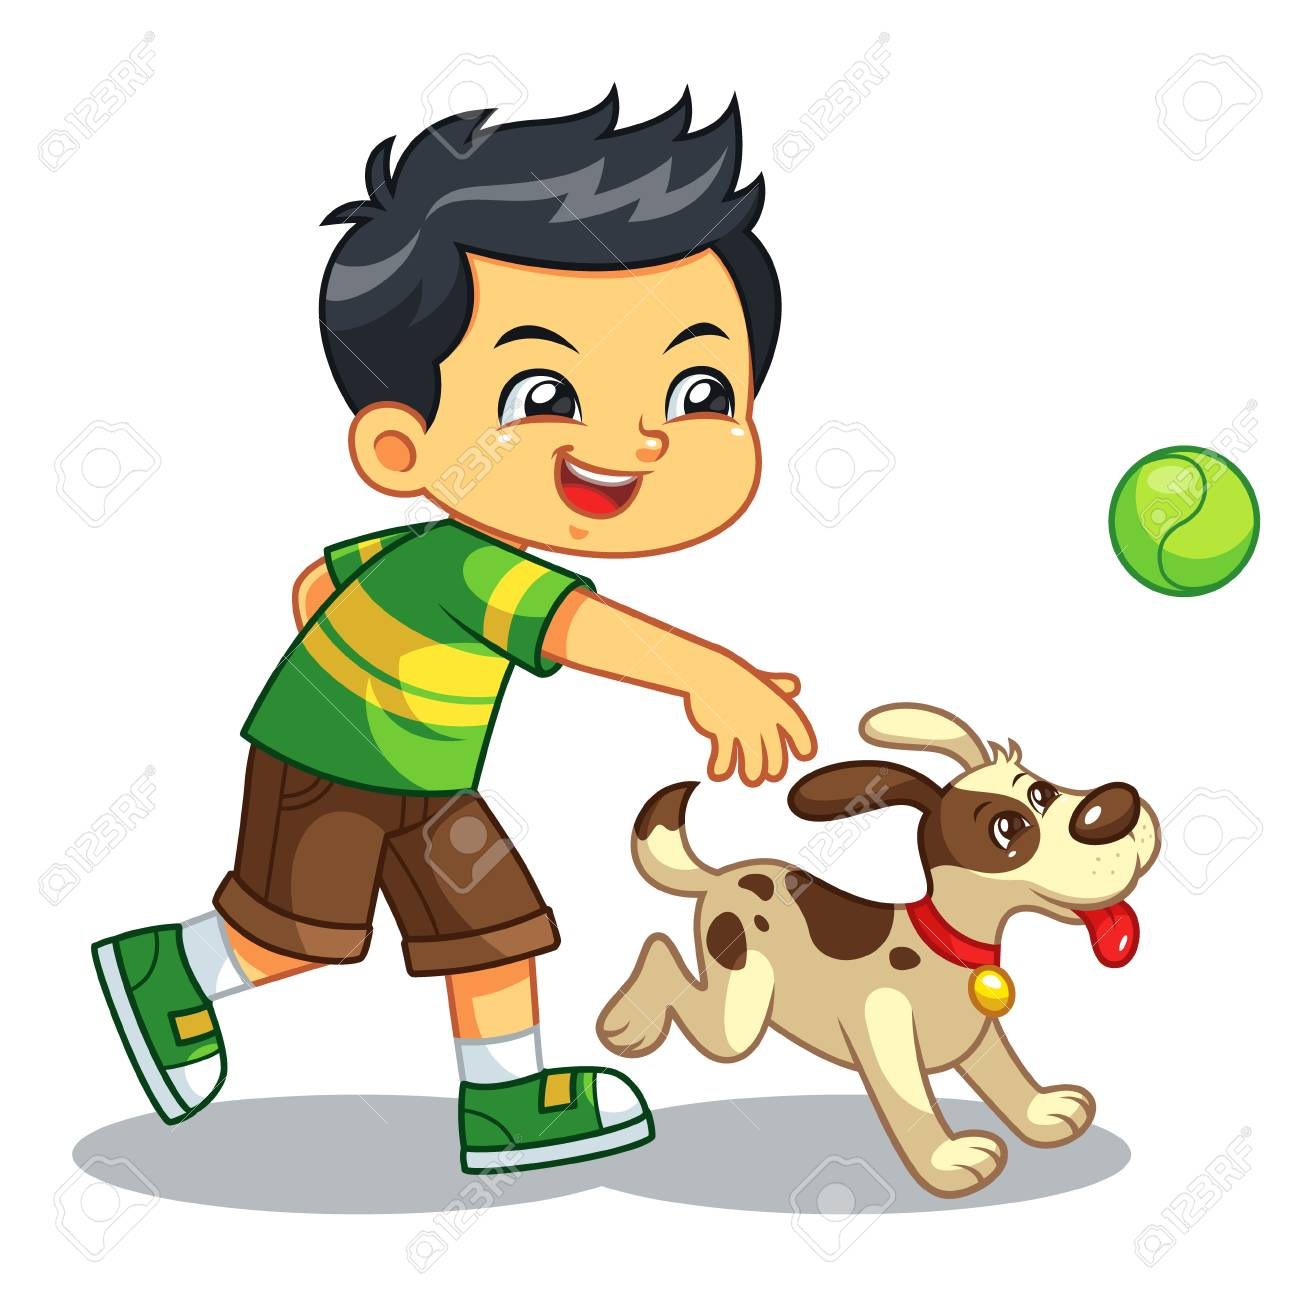 Boy Playing With His Pet Dog. - 110151639